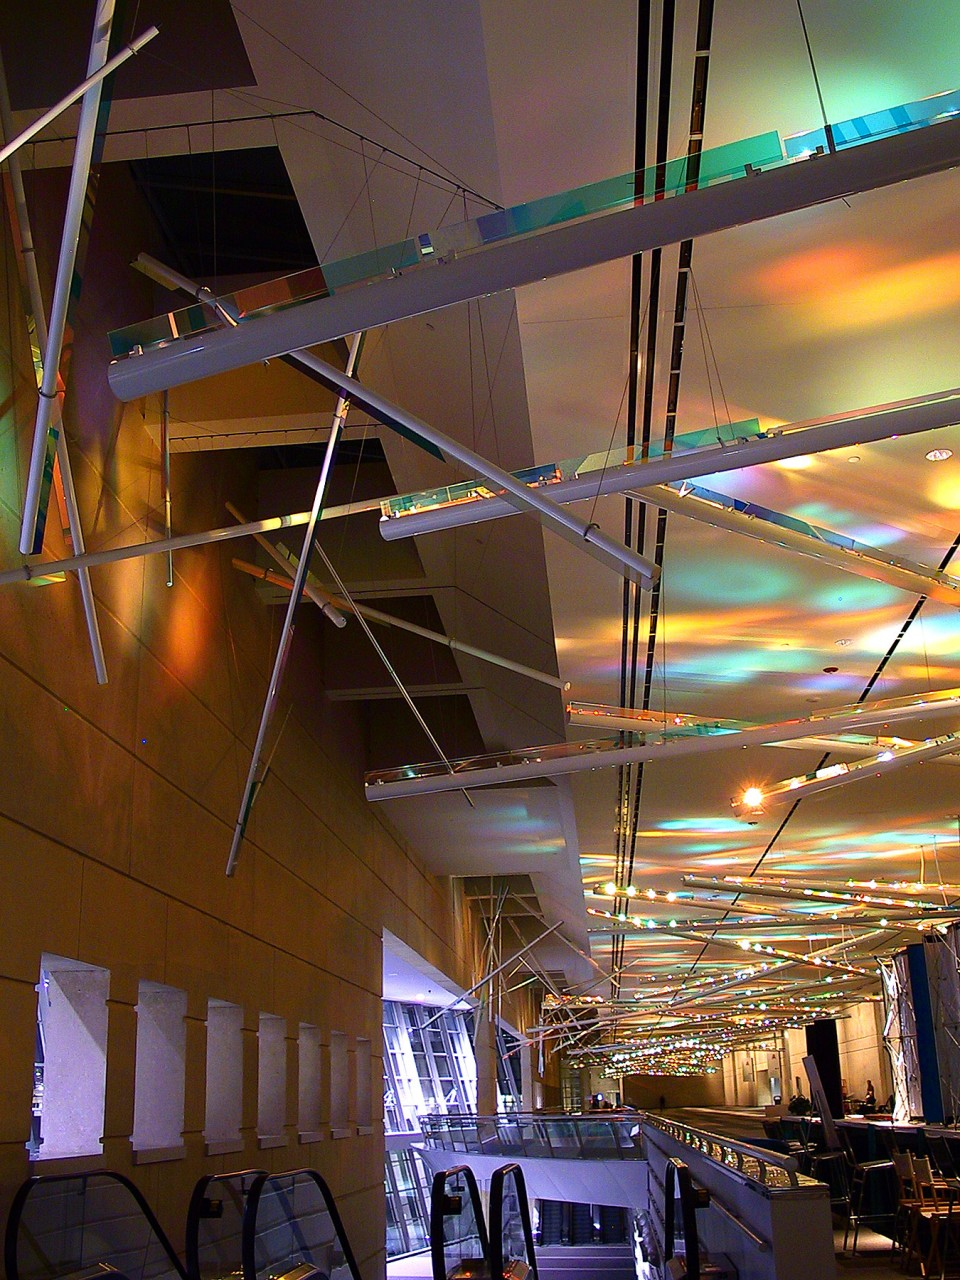 Lightstream, Dallas, Texas / image 2